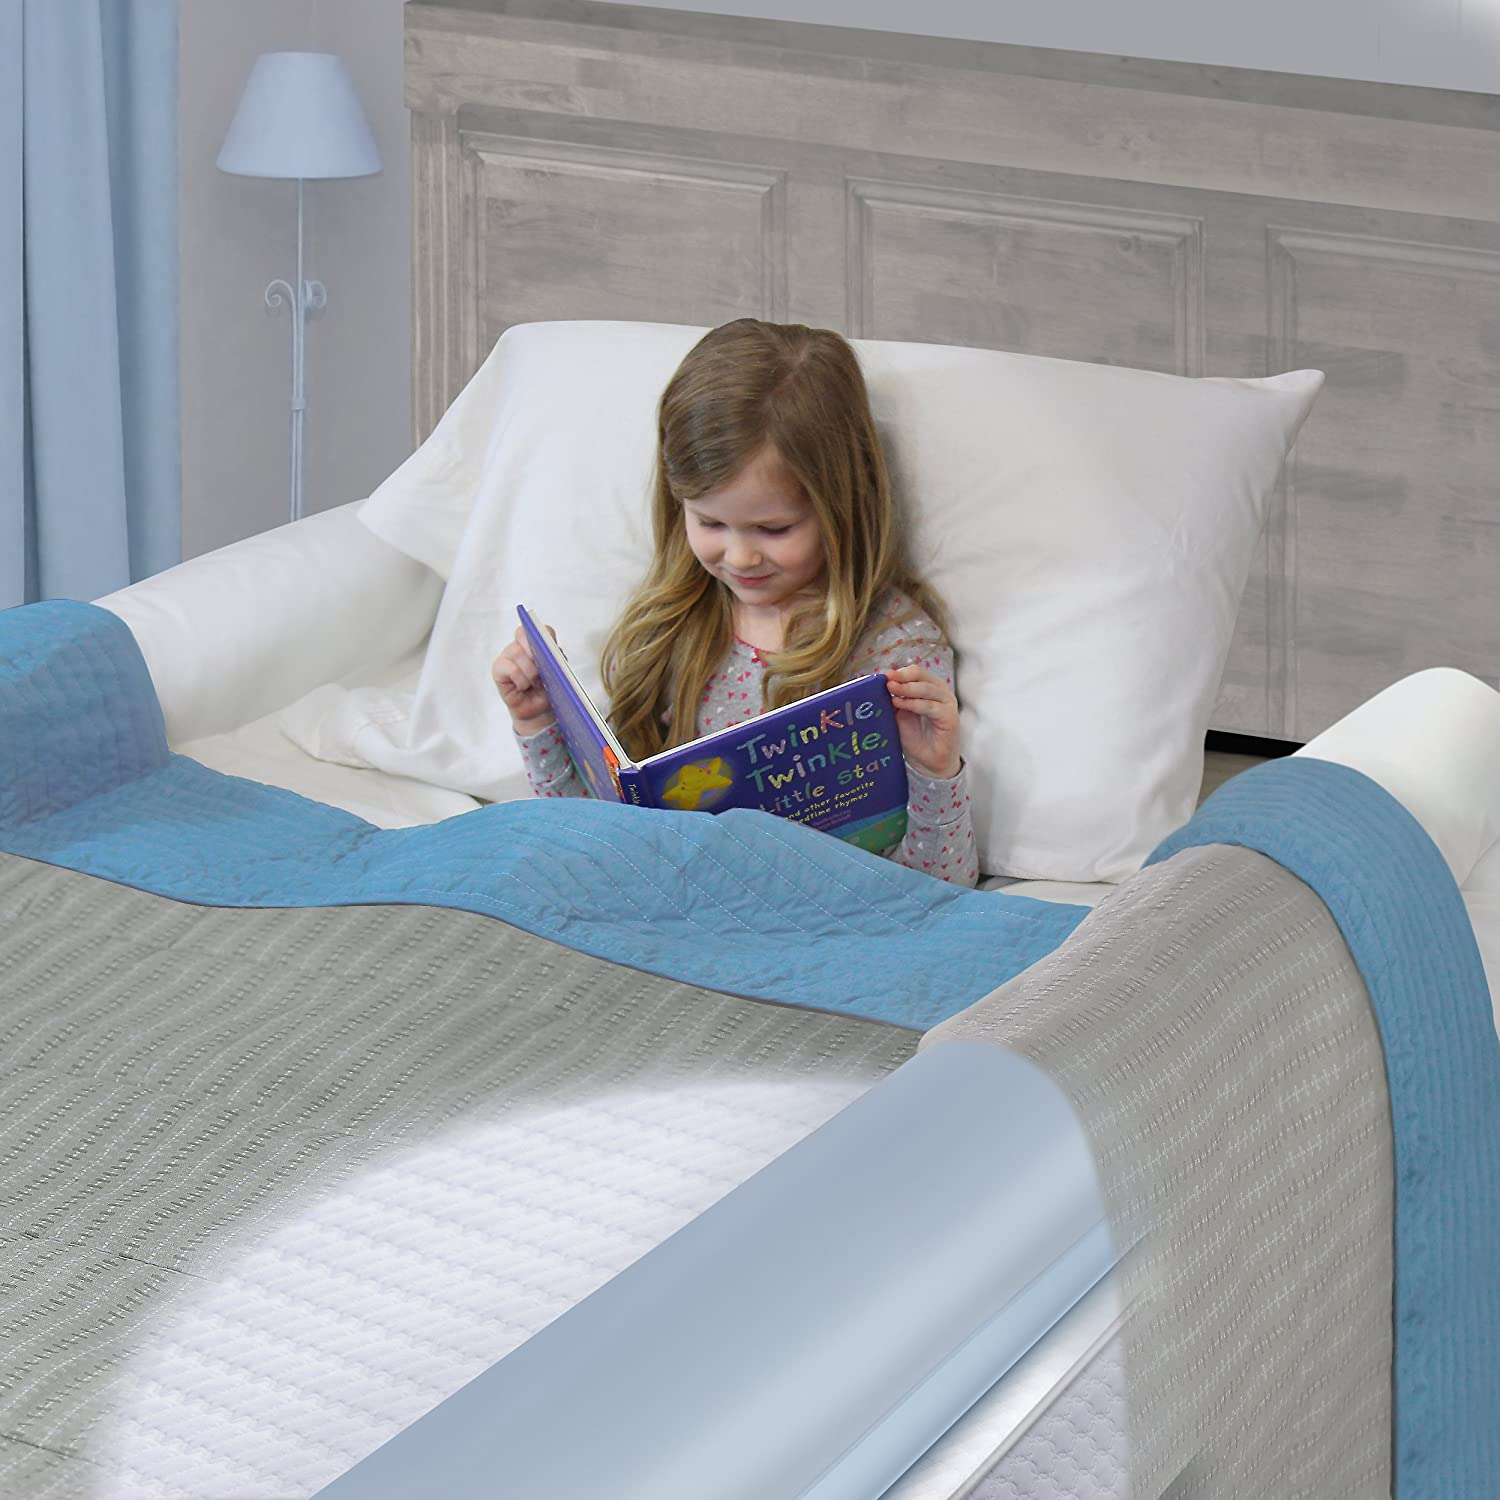 Royexe - The Original Bed Rails for Toddlers. Portable Bed Rail Bumper. Kids Inflatable Safety Guard for Bed. Great for Home, Hotel, Travel. (2-Pack) 0791